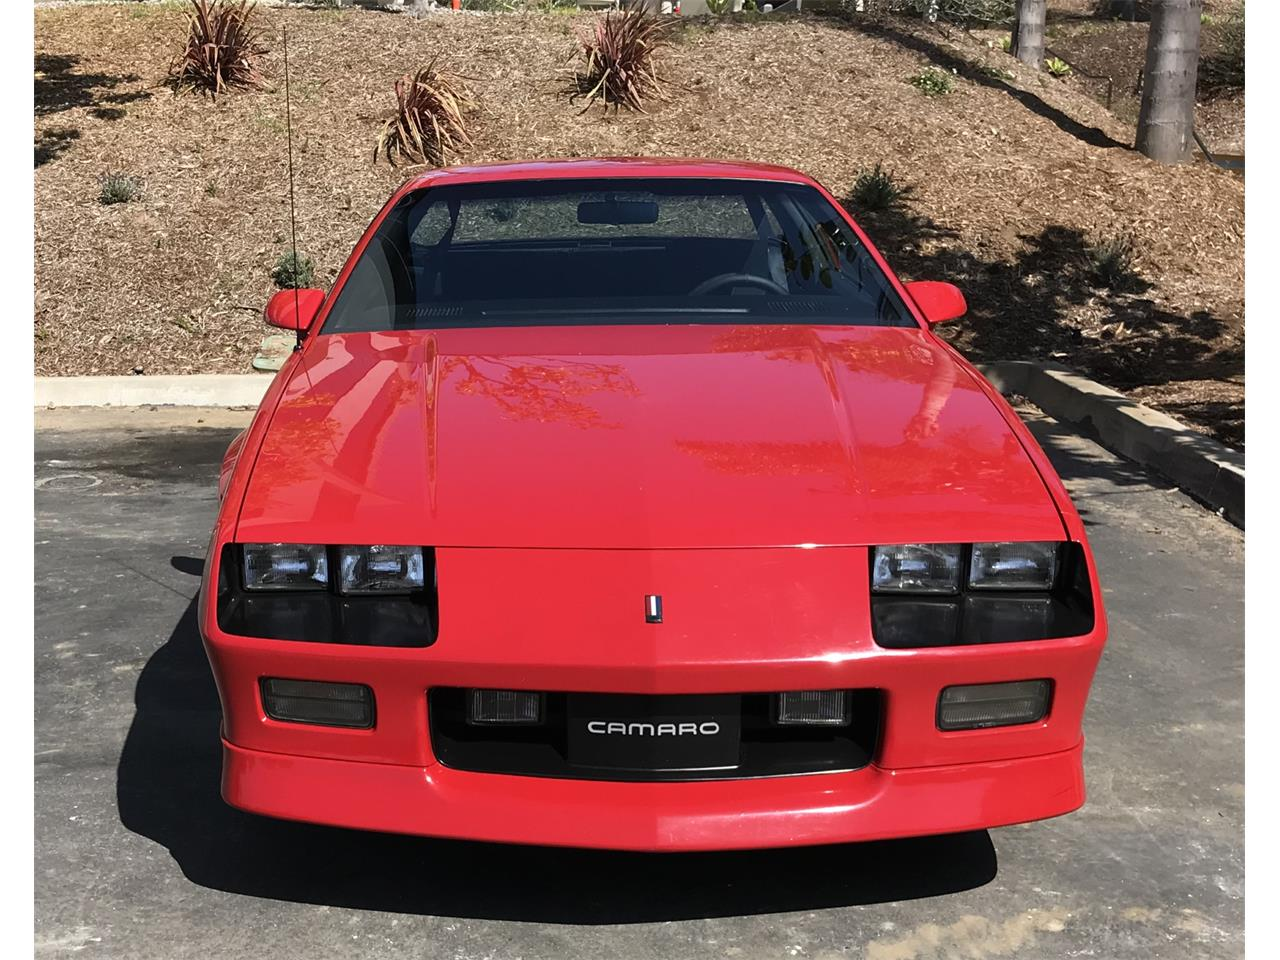 Large Picture of 1985 Camaro IROC Z28 located in California Auction Vehicle Offered by Bring A Trailer - QE91